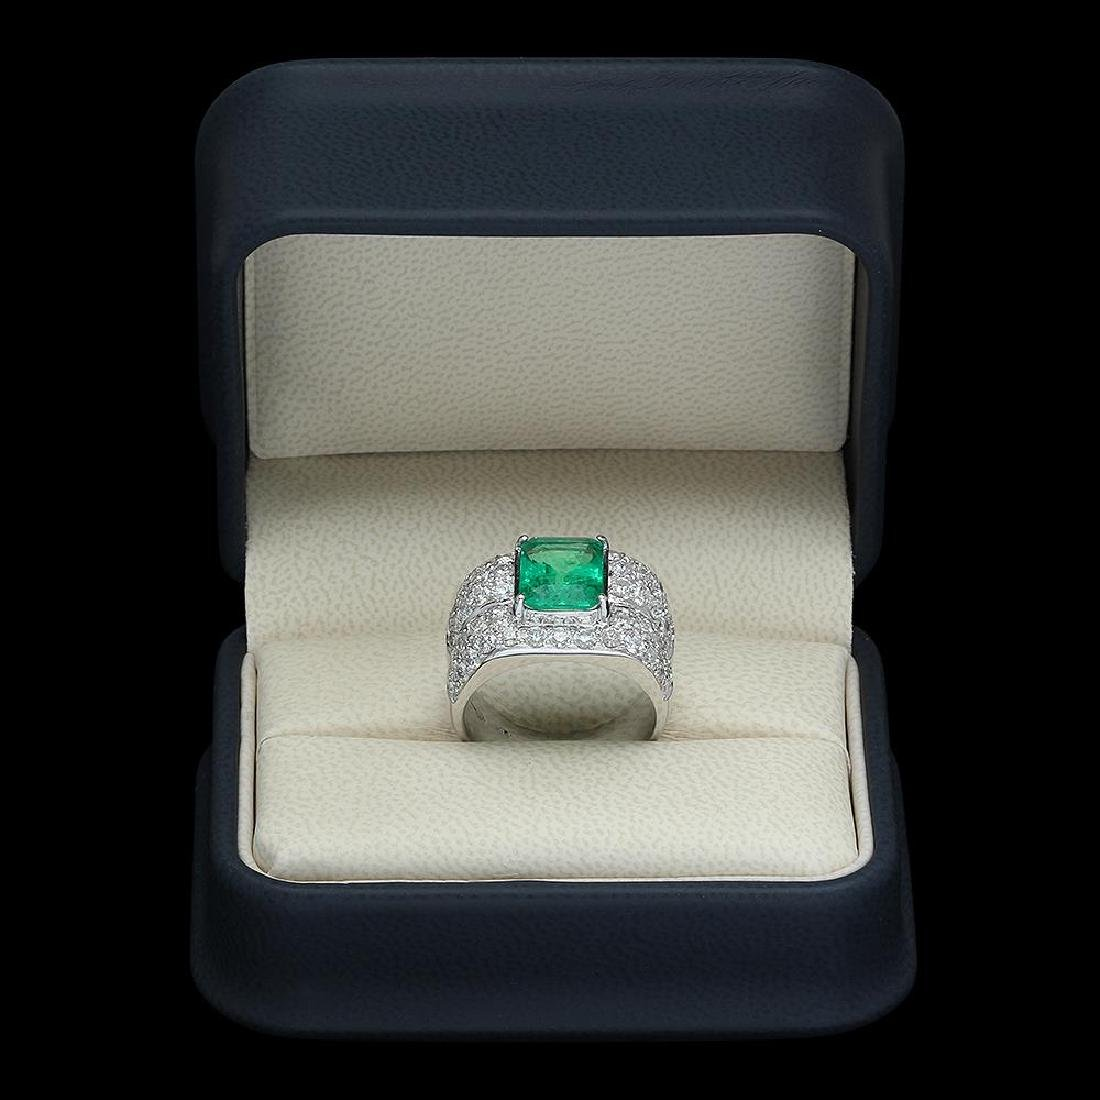 14K Gold 3.45 Emerald 3.68 Diamond Ring - 4